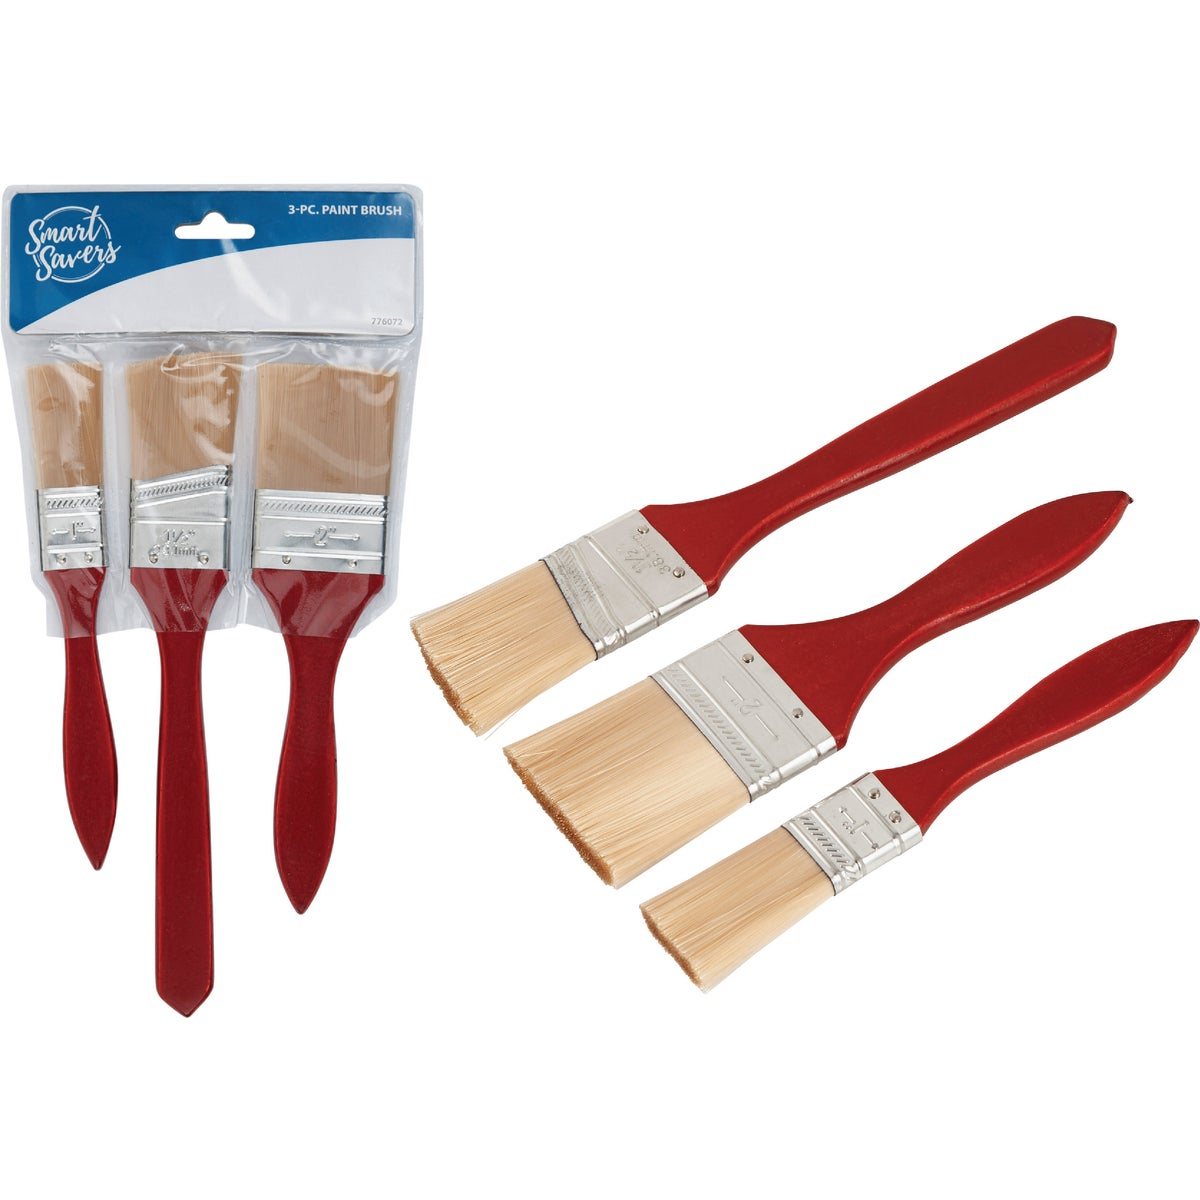 3PC PAINT BRUSH - CC101058 by Do it Best